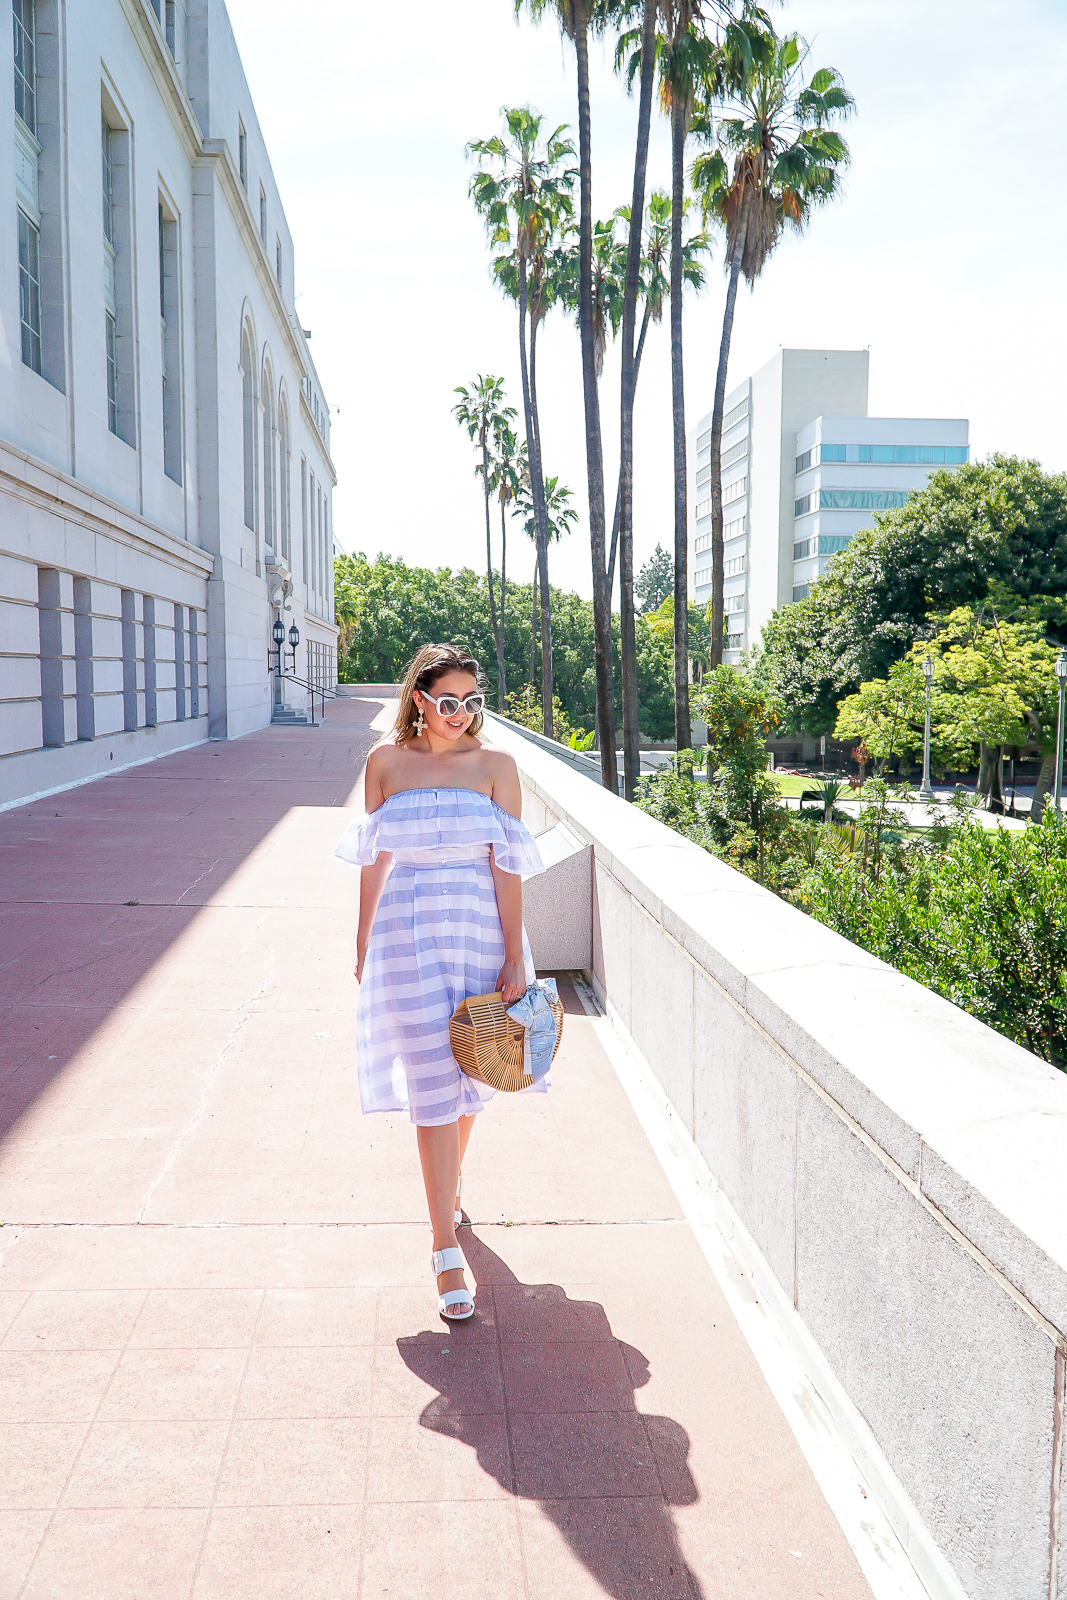 Lulus Blue and Ivory striped midi dress, Lulus off the shoulder Midi dress, Top 4 Trends of Summer, Stuart Weitzman City Sandals, Stuart Weitzman White Sandals, Kate Spade Krystalyn White Sunglasses, Cult Gaia Ark Bag, Bamboo summer bag, Cross Earrings, Louis Vuitton Blue Trunks Bandeau